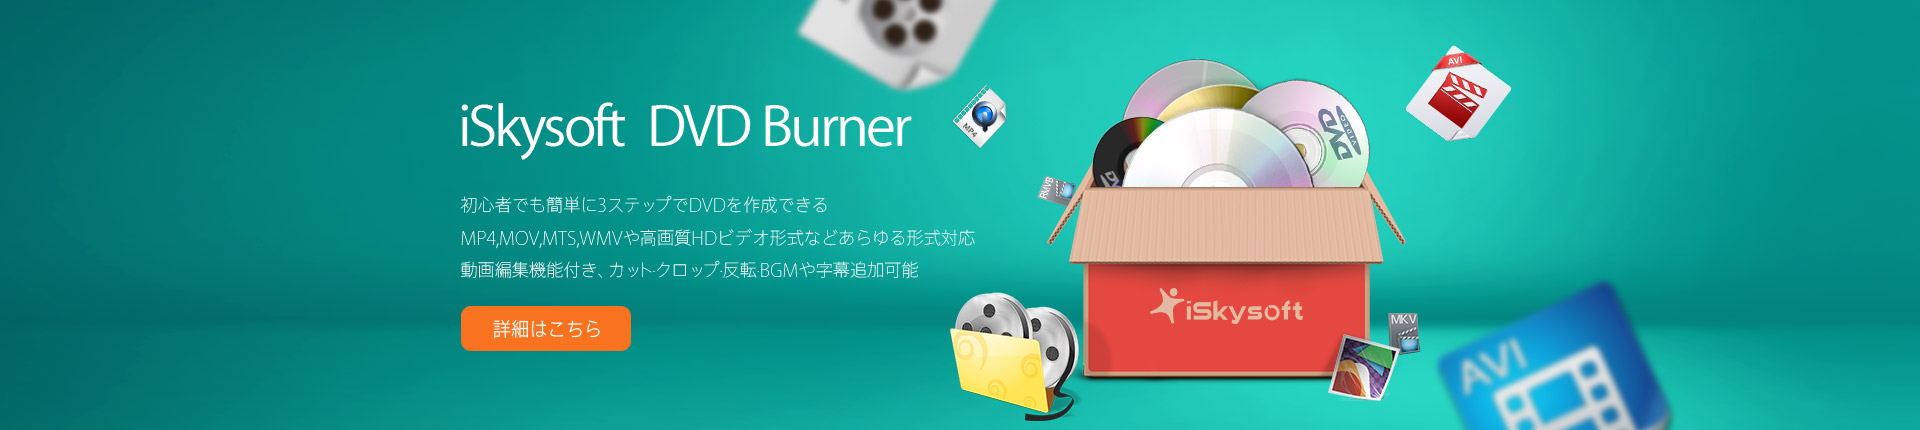 iSkysoft DVD Burner for Mac